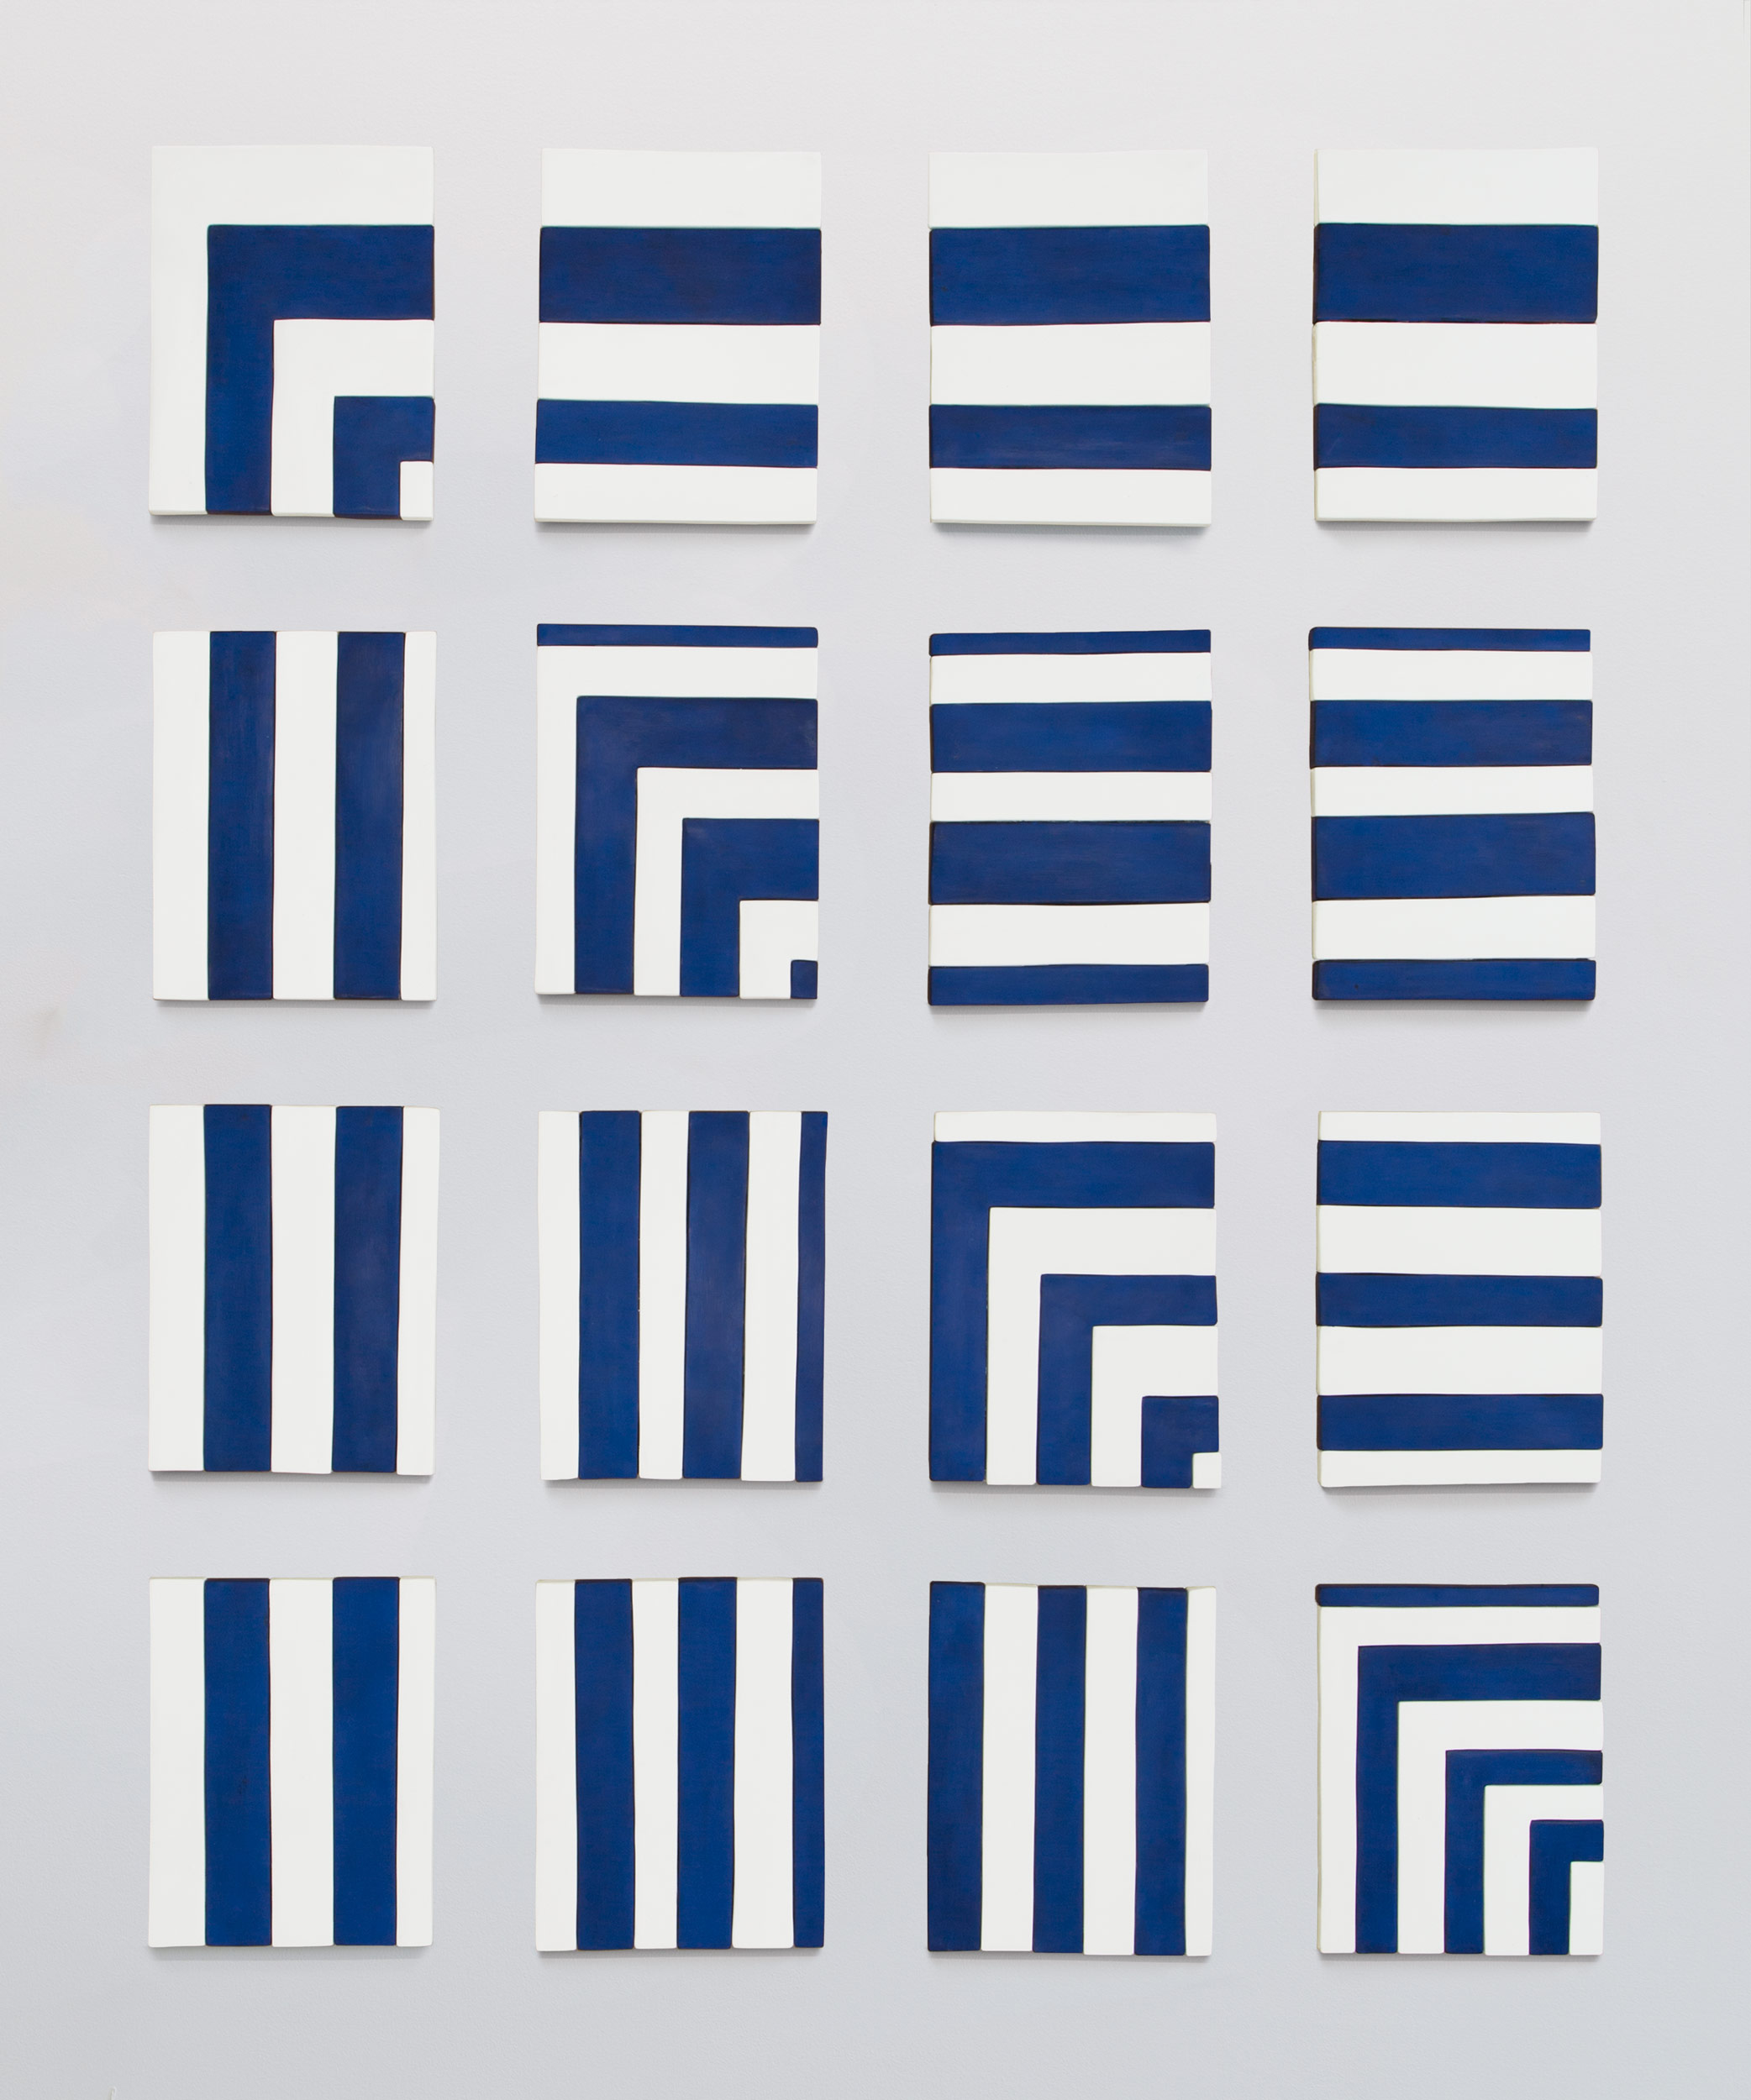 Image of Sadie Benning, Blue and White Painting Sequence, 2013